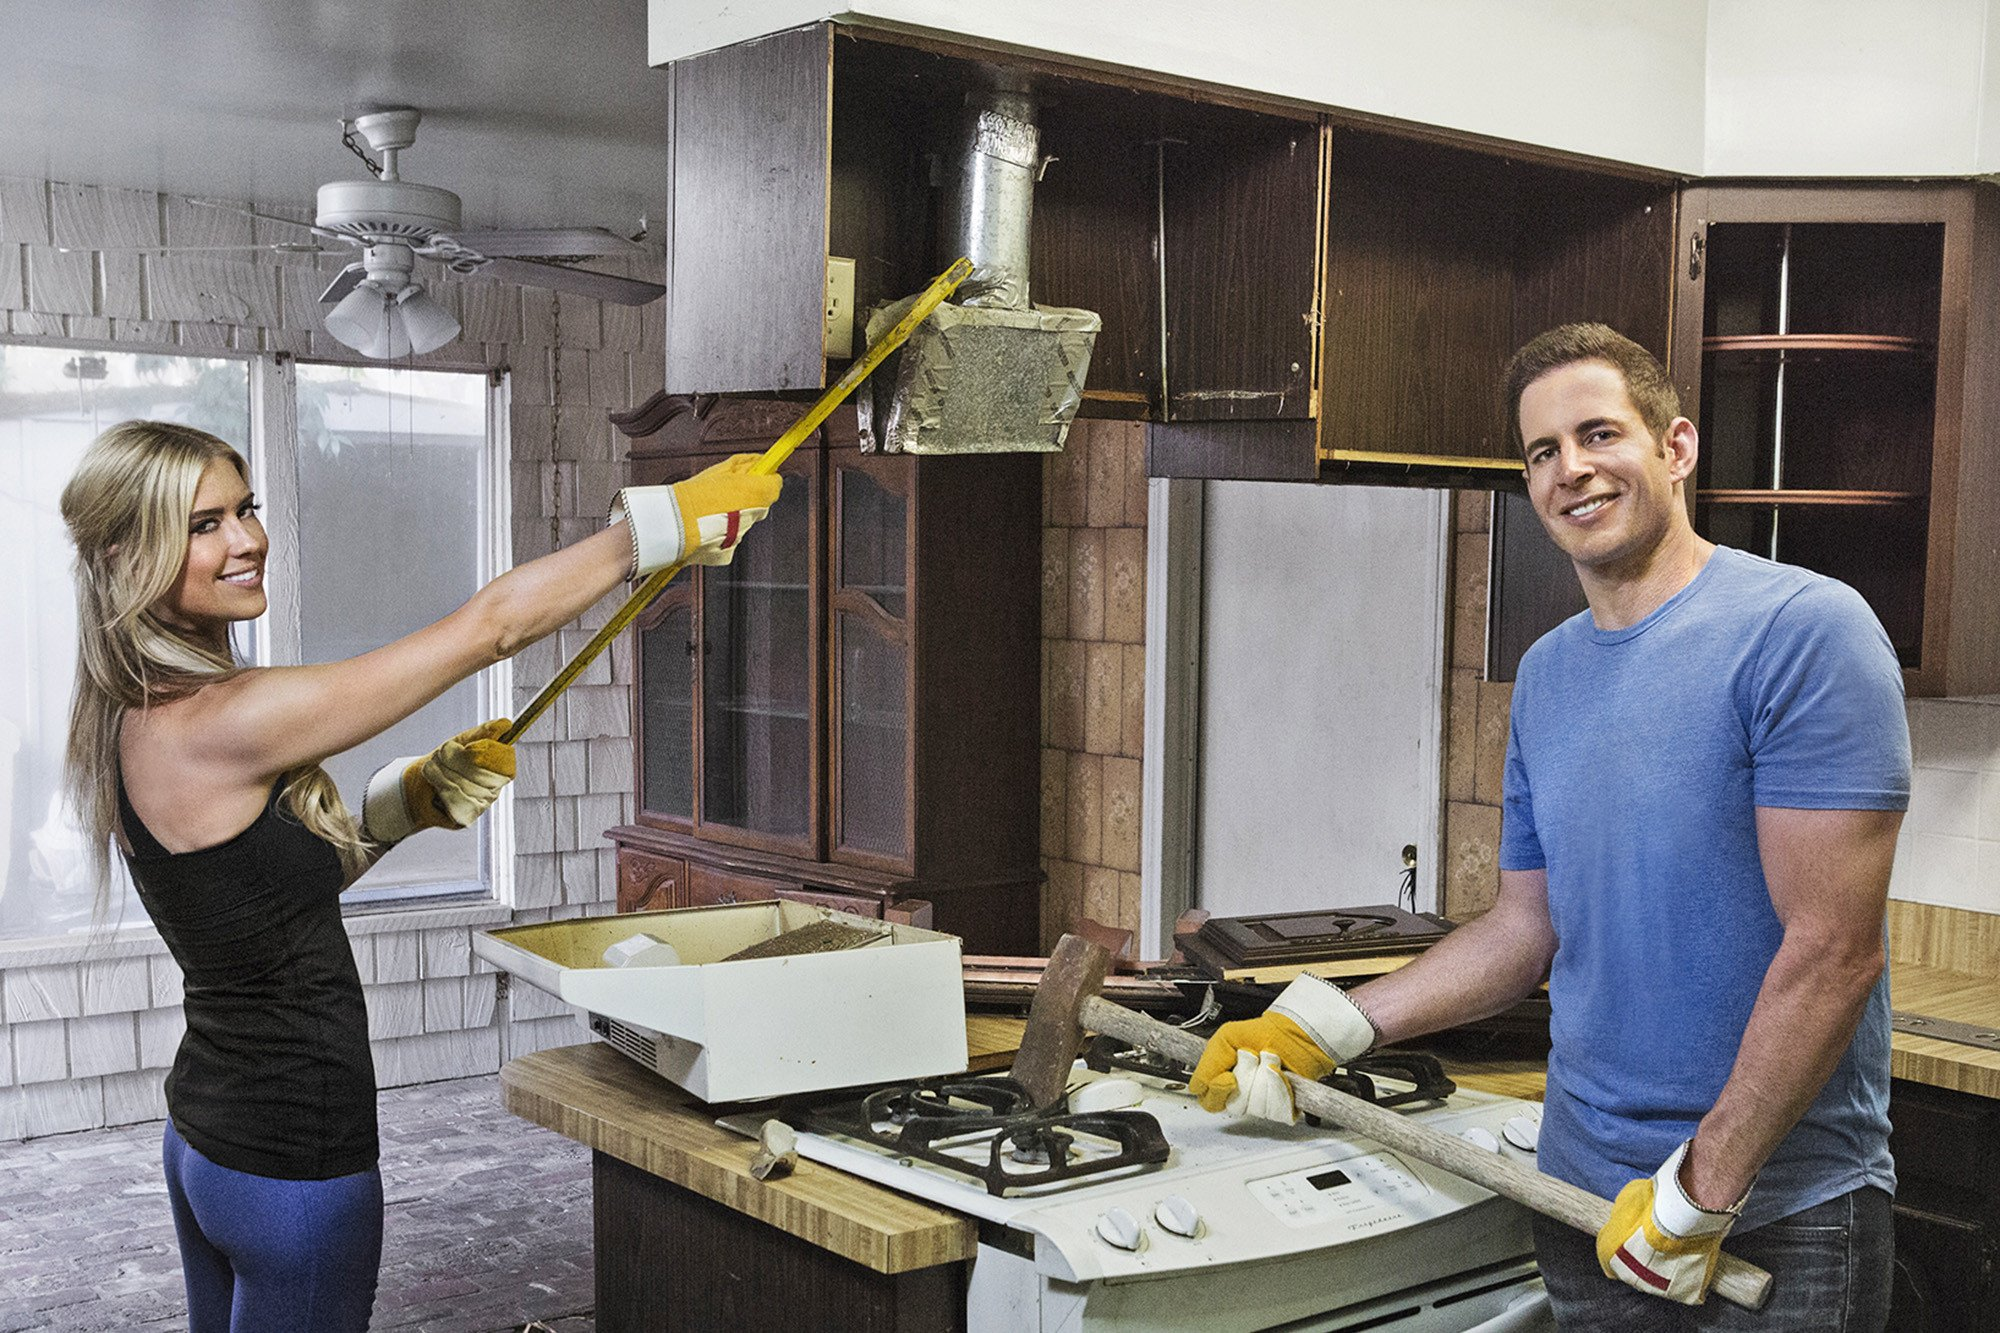 'Flip or Flop' exes dish on 'awkward' new season